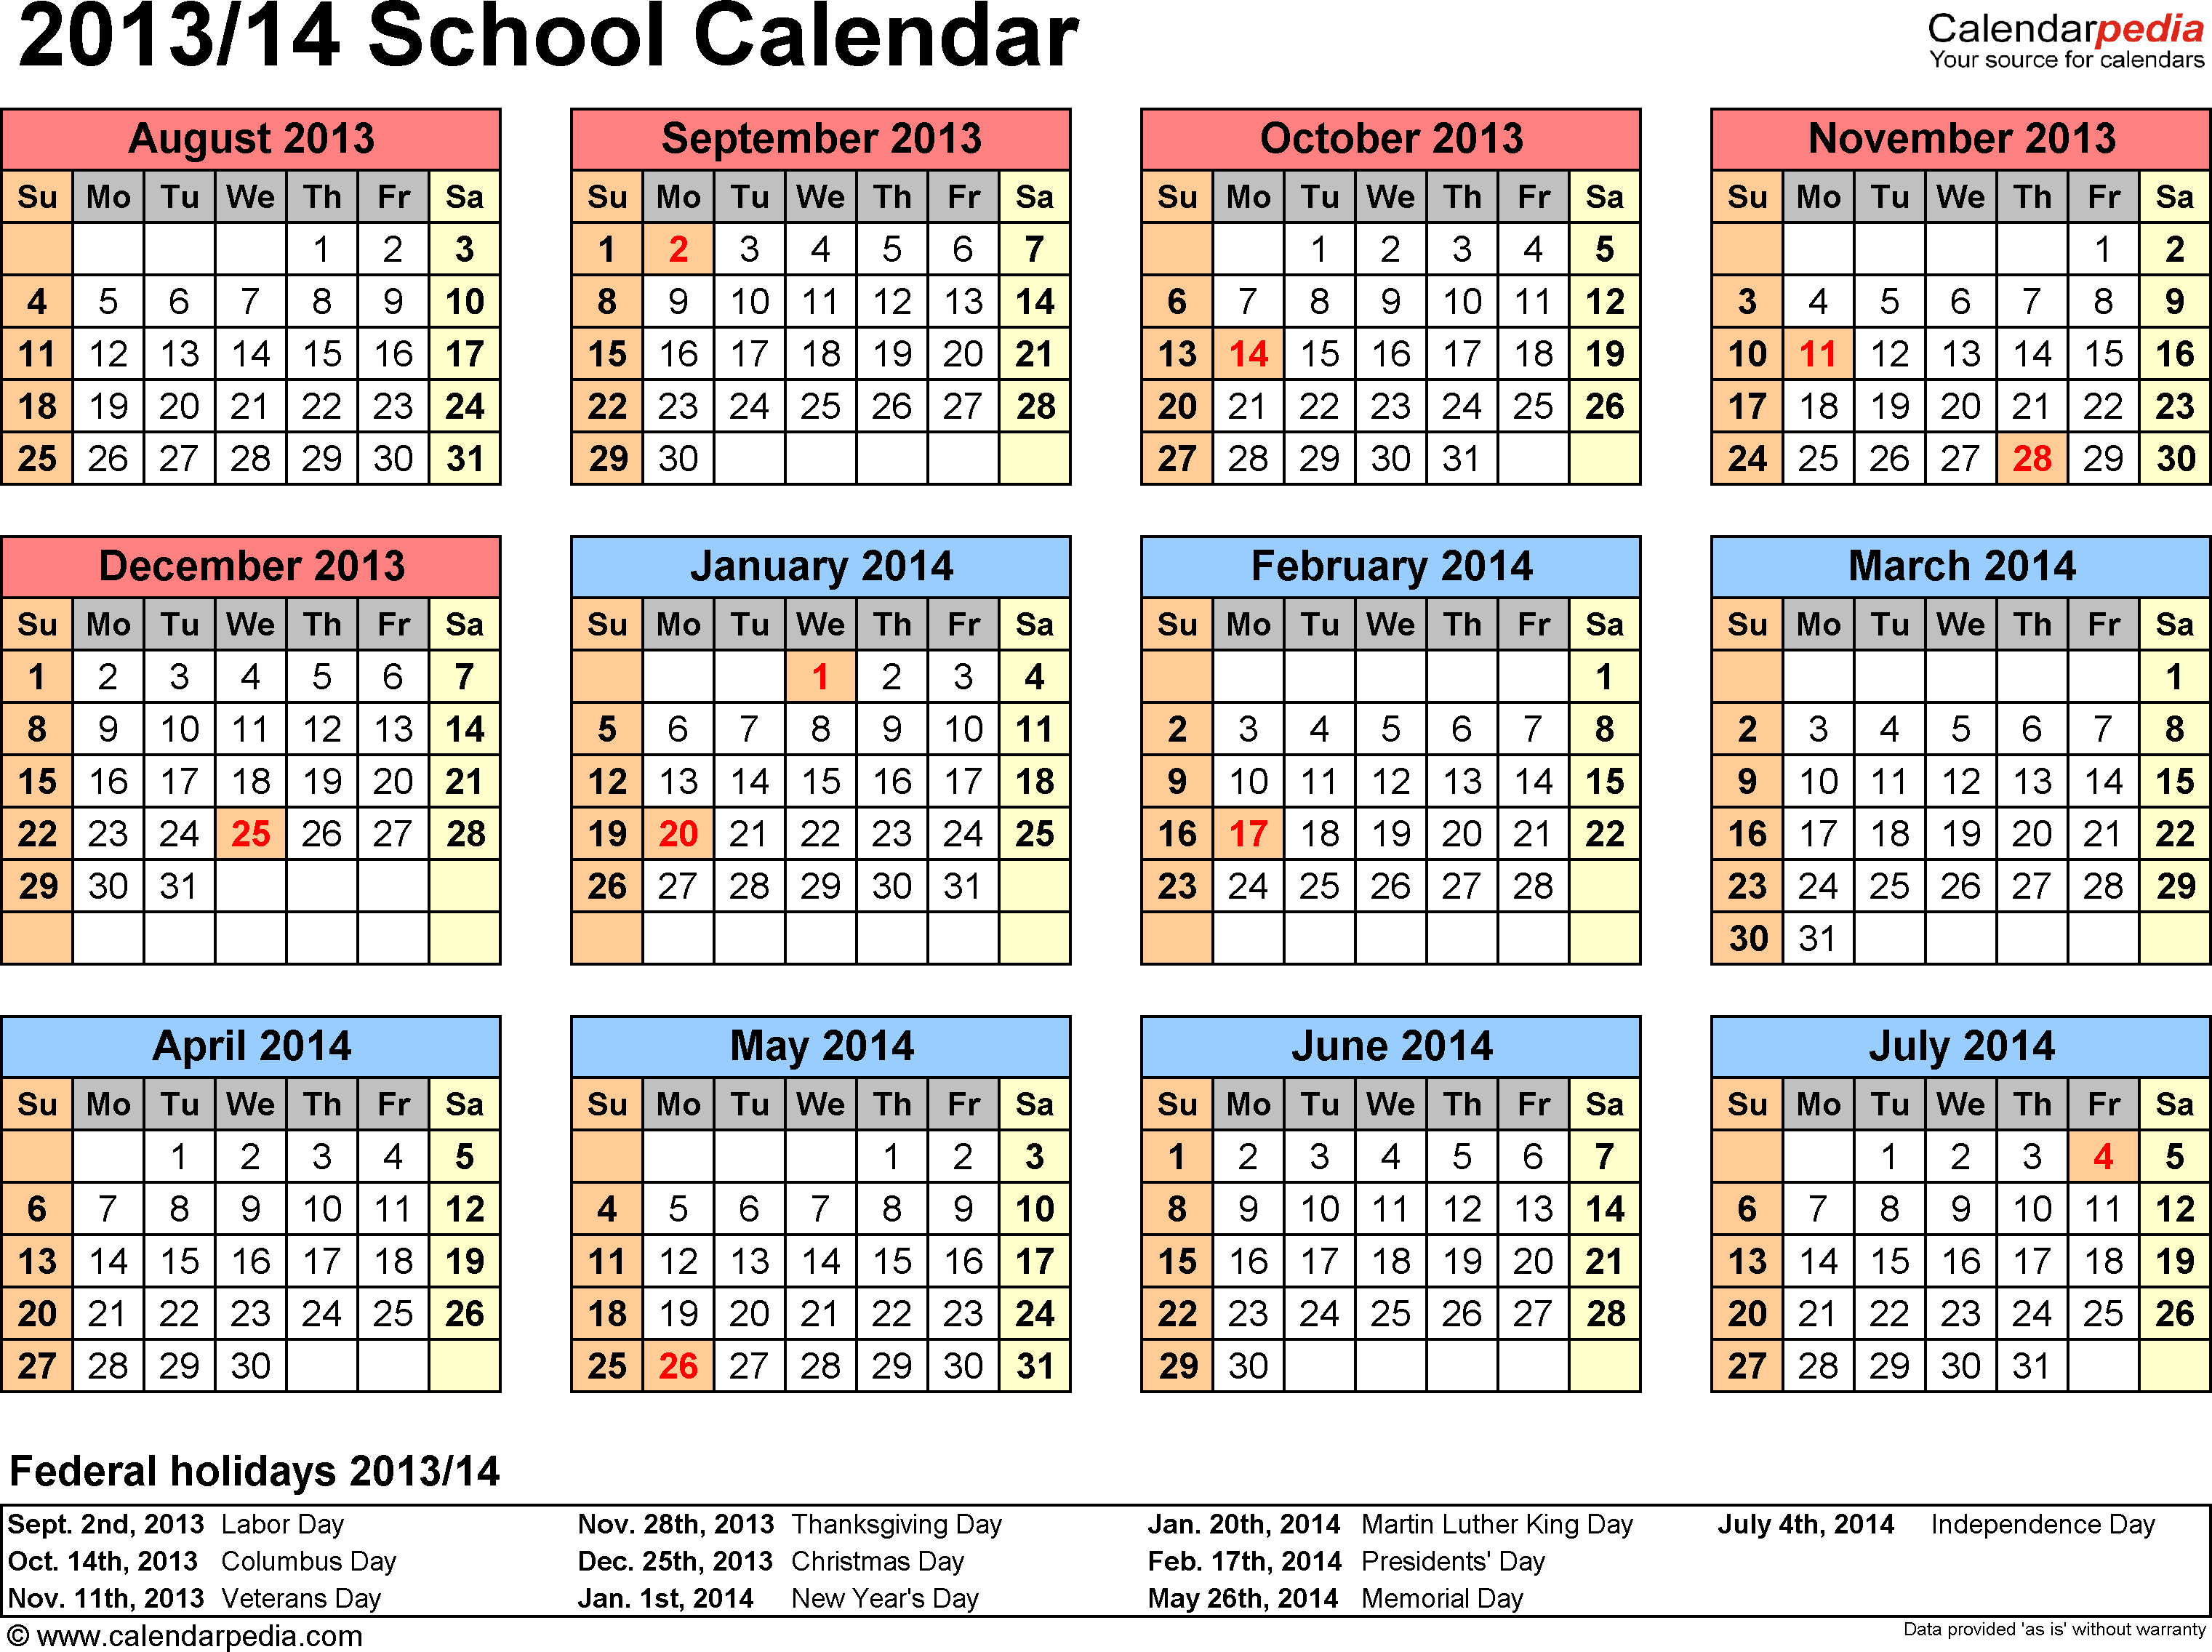 Download Template 4: School calendar 2013/14 for Microsoft Excel (.xlsx file), landscape, 1 page, year at a glance